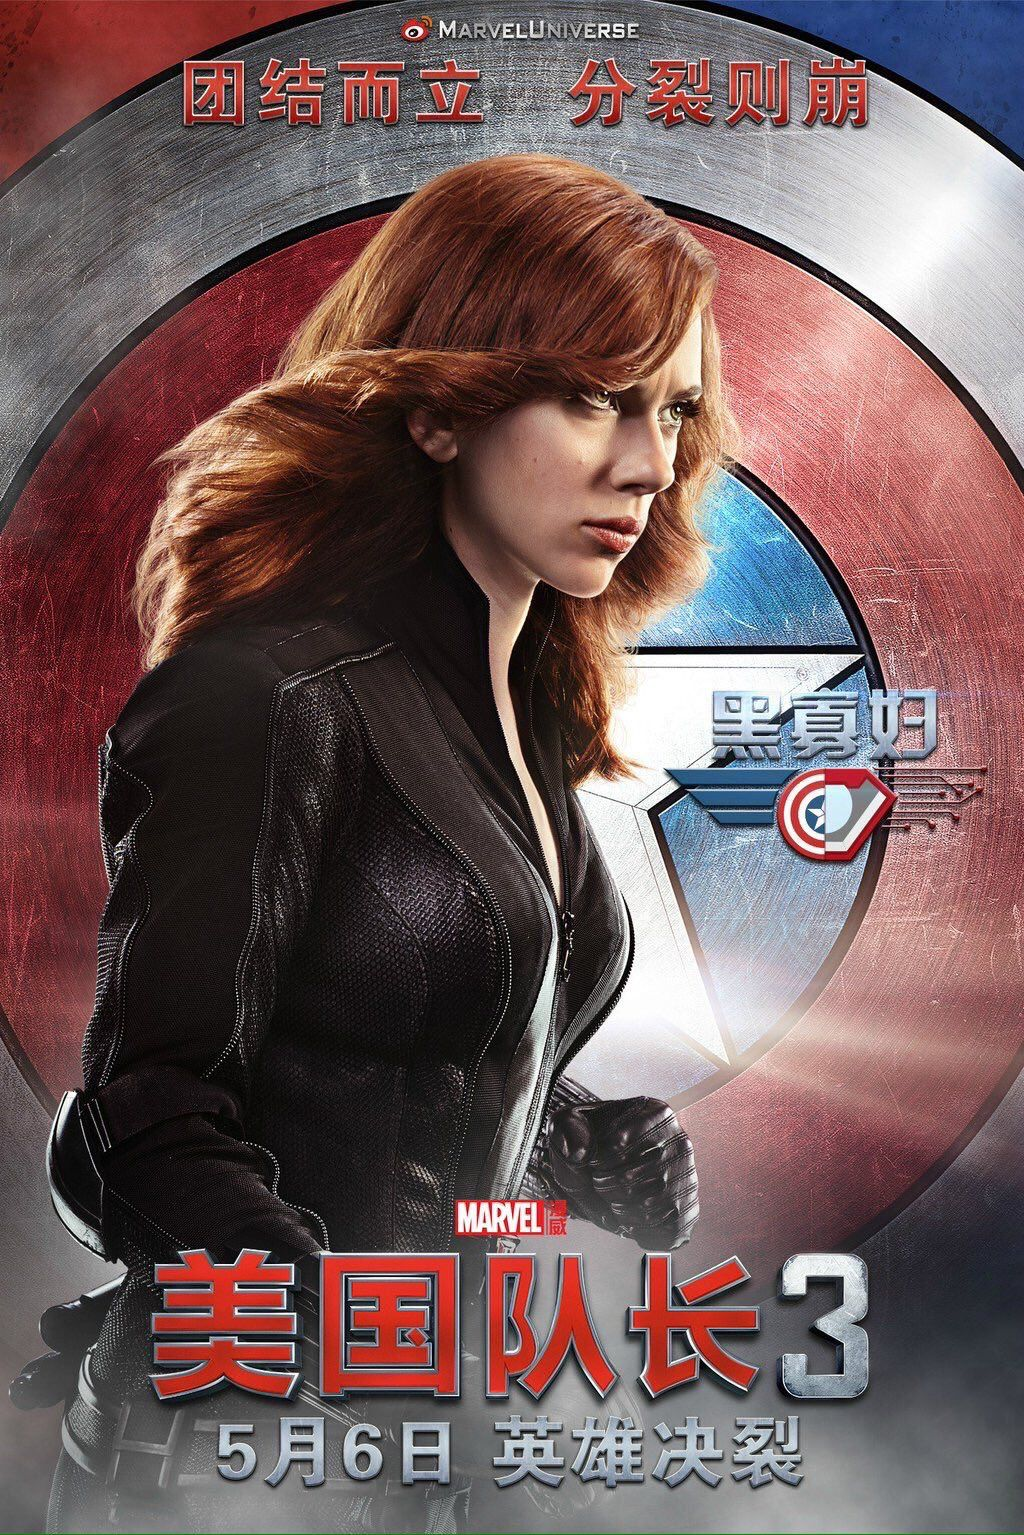 screenrant.comNew Captain America: Civil War International Posters Highlight the Teams